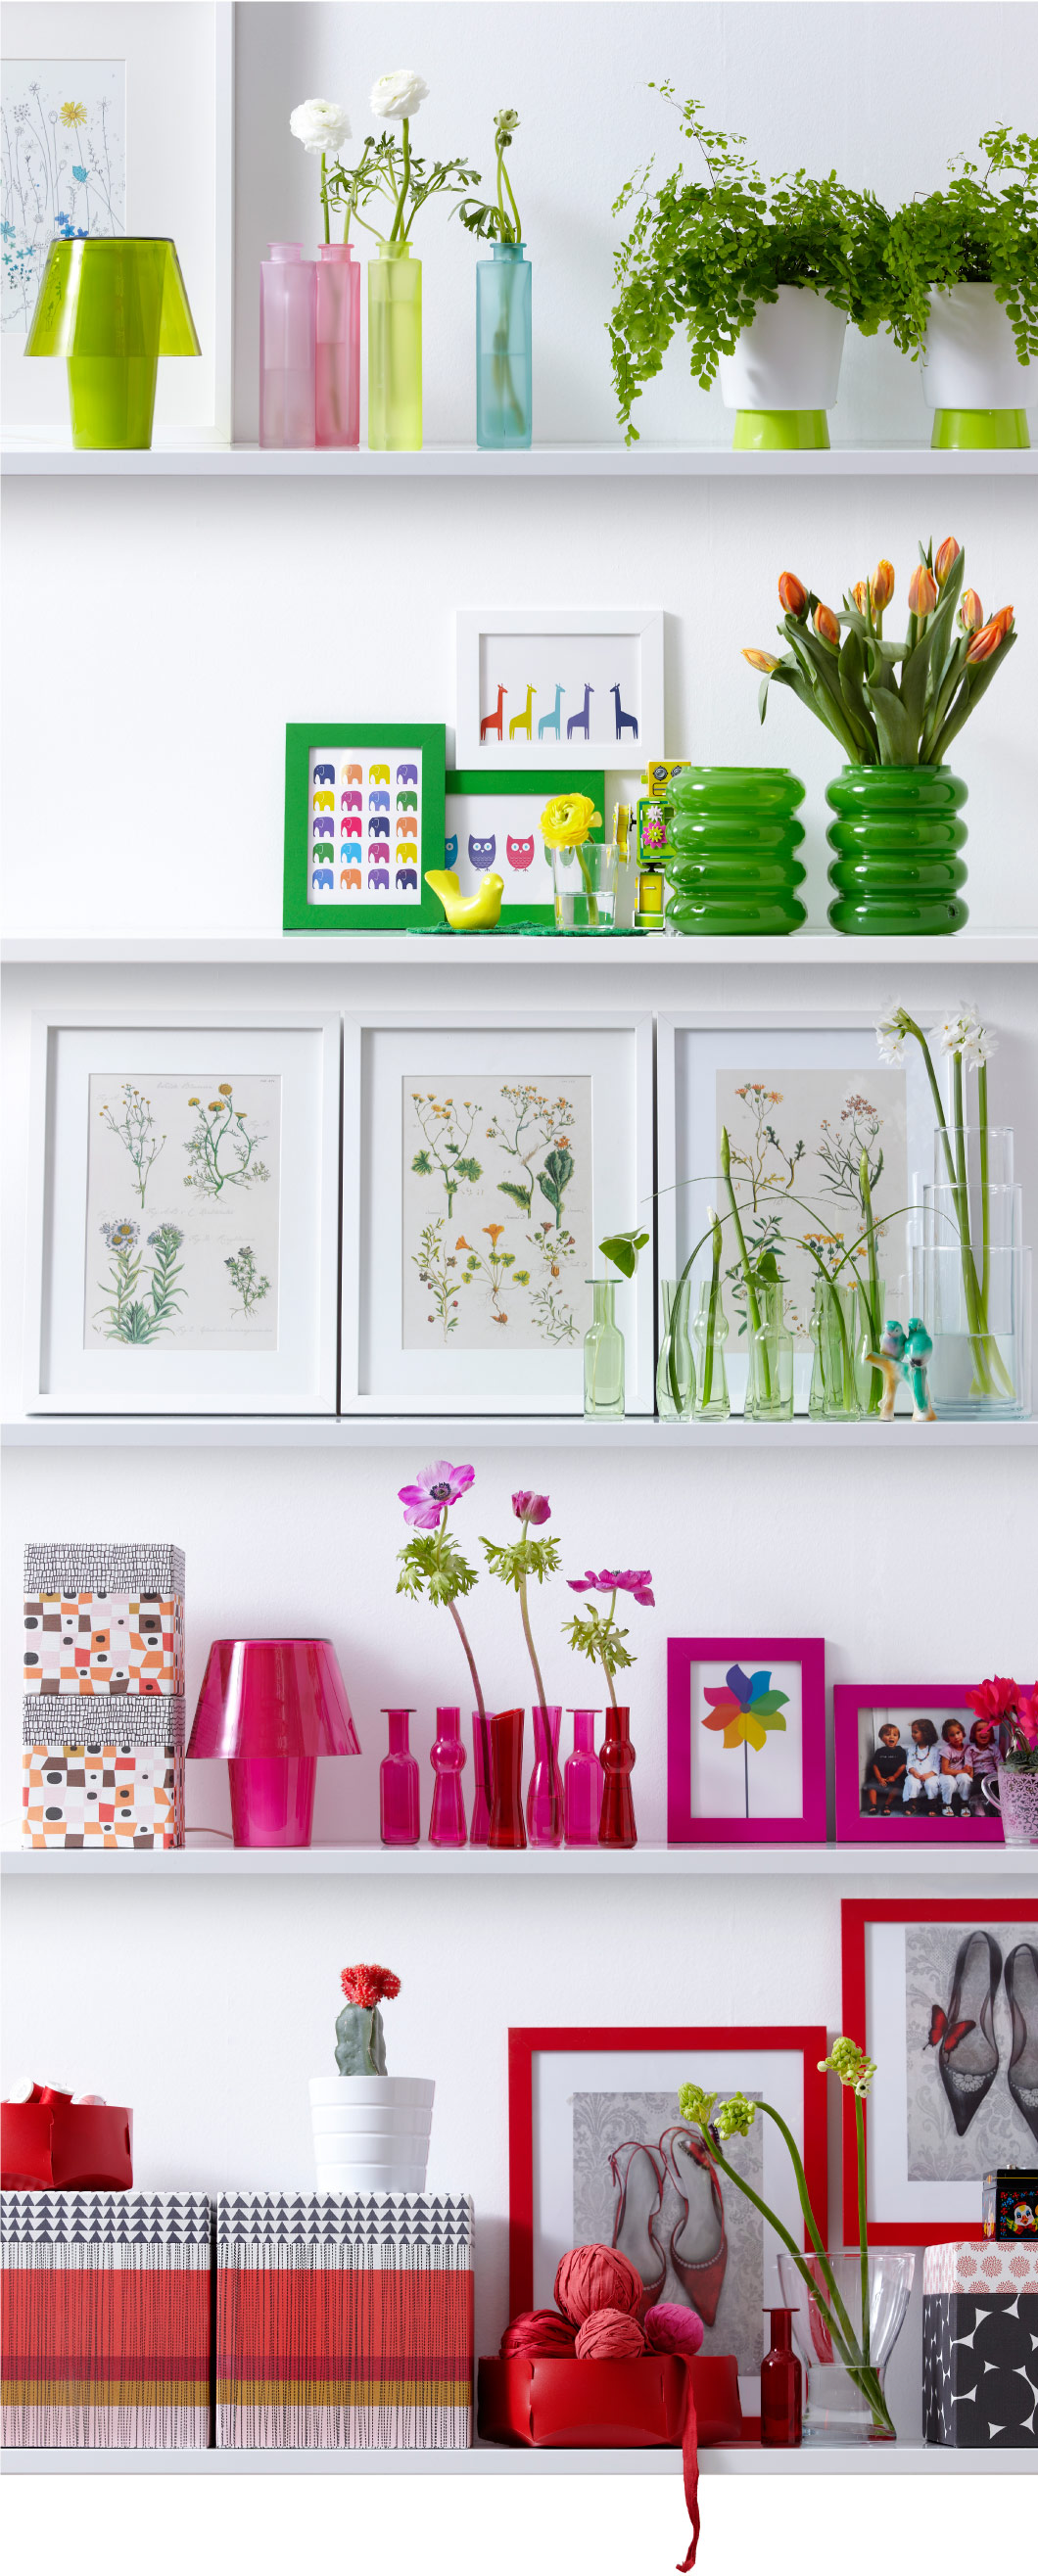 Display of posters, vases and boxes in matching colours